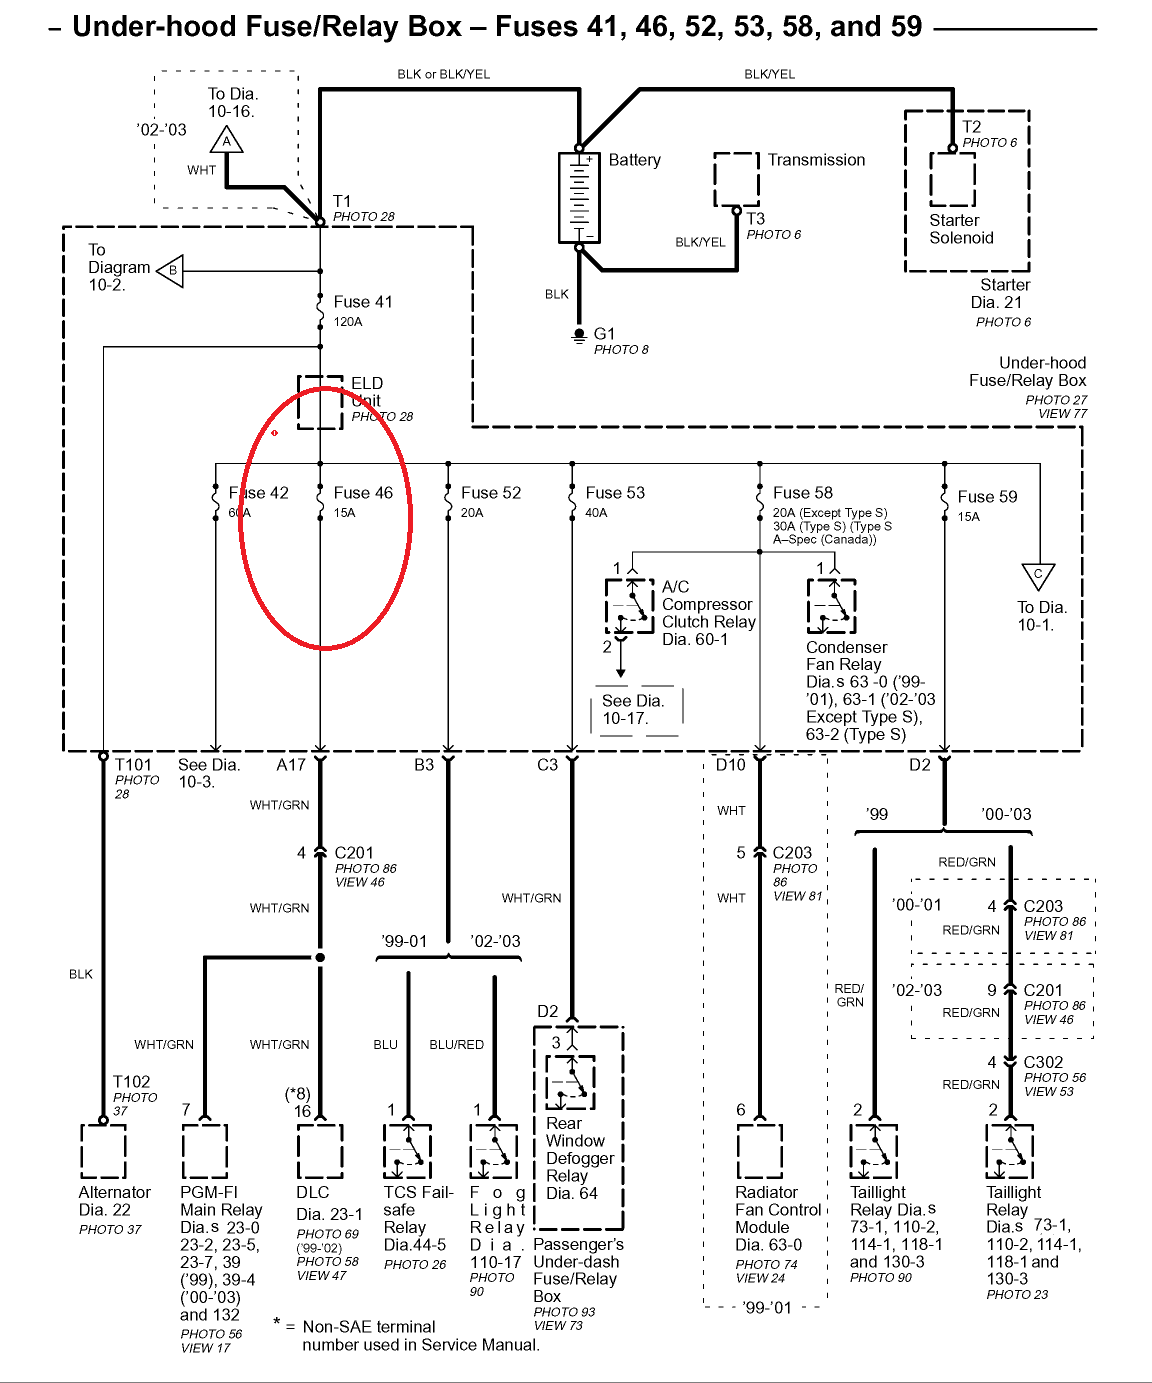 Acura El 2005 Wiring Diagram HP PHOTOSMART PRINTER